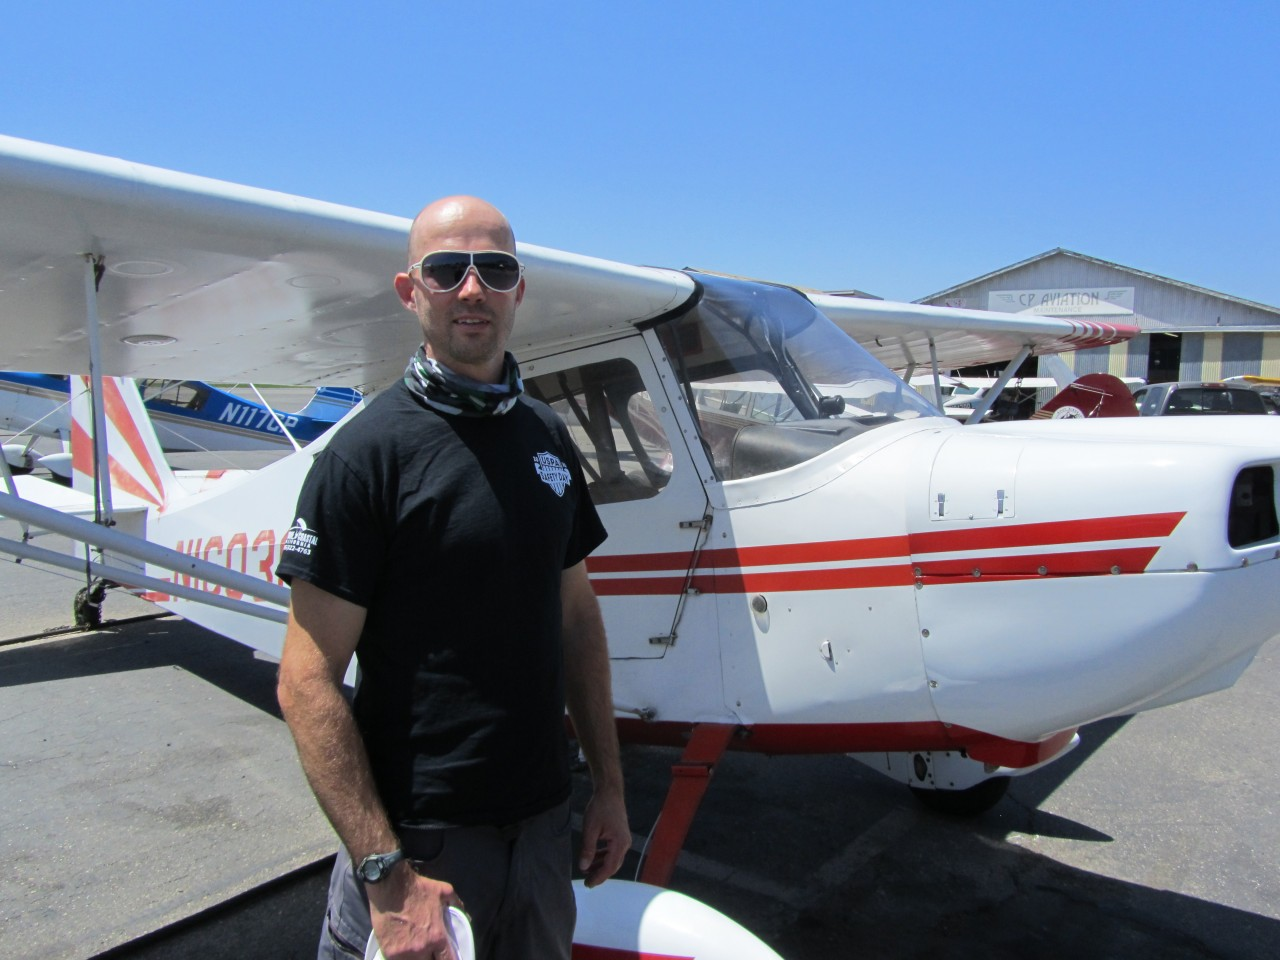 Tailwheel Endorsement - Jacob Fuerst